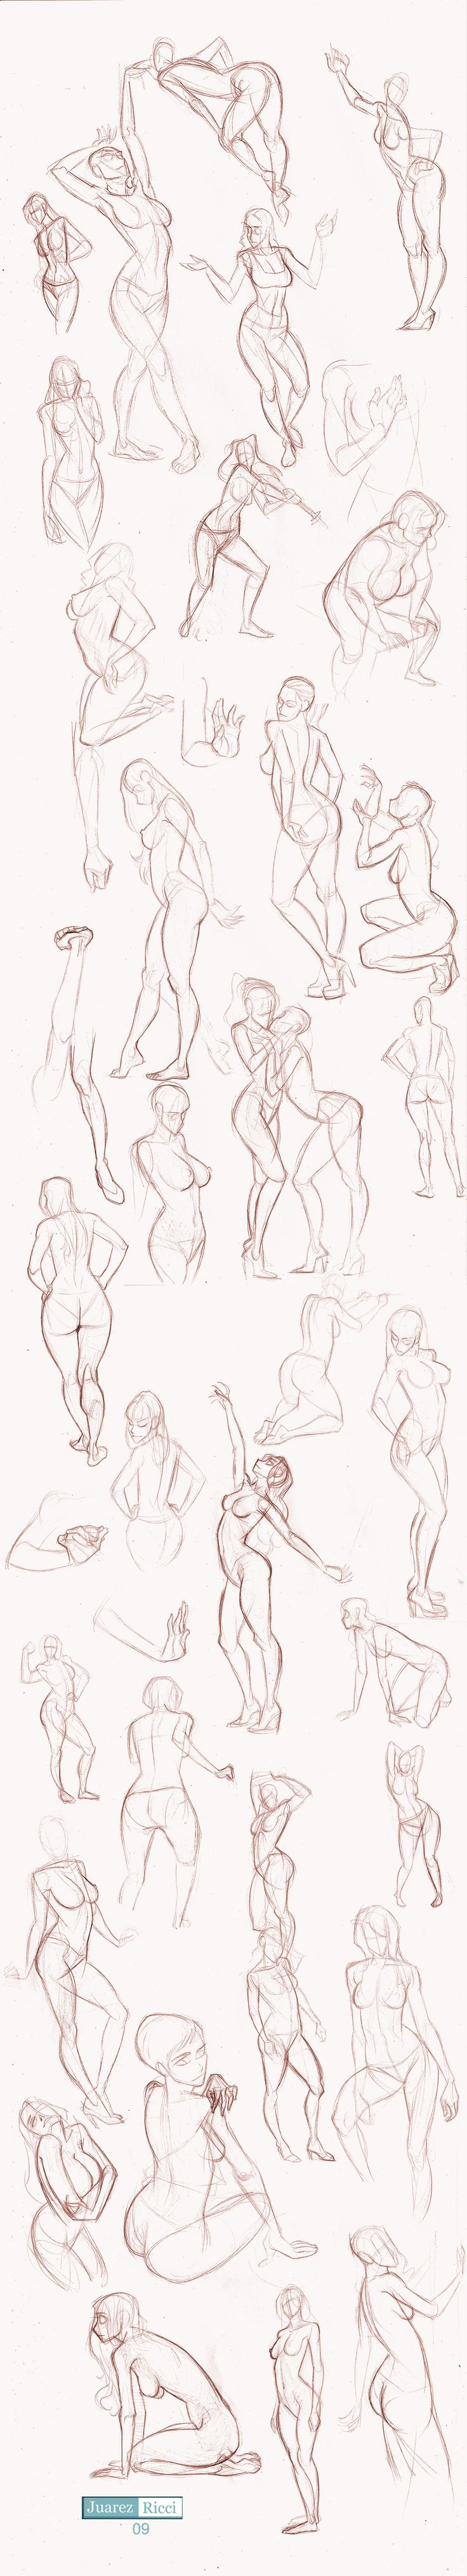 Studies Part II by juarezricci.deviantart.com on @deviantART